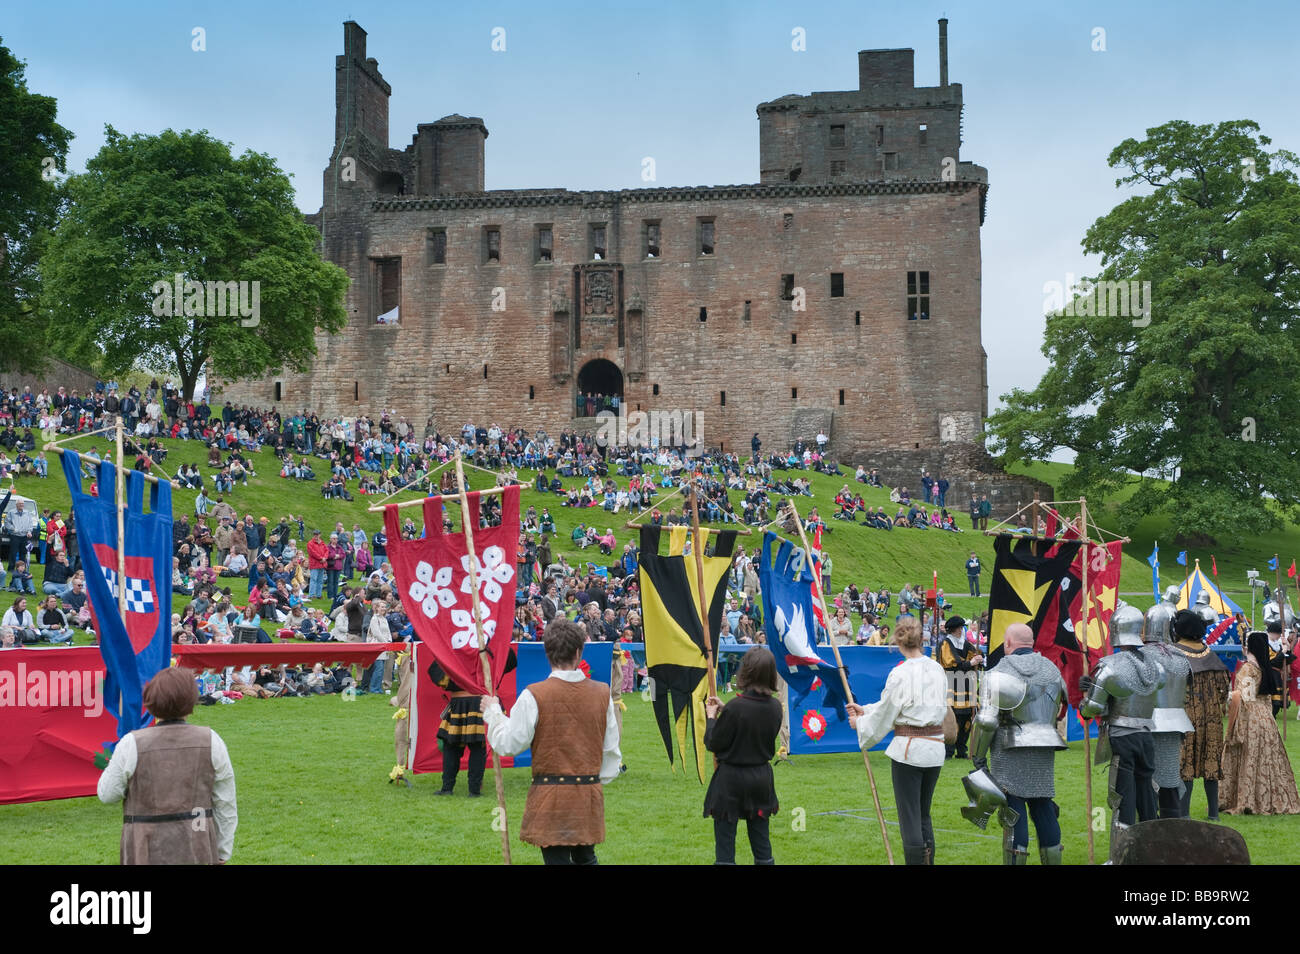 Homecoming Scotland Medieval Event at Linlithgow Palace, Scotland Stock Photo